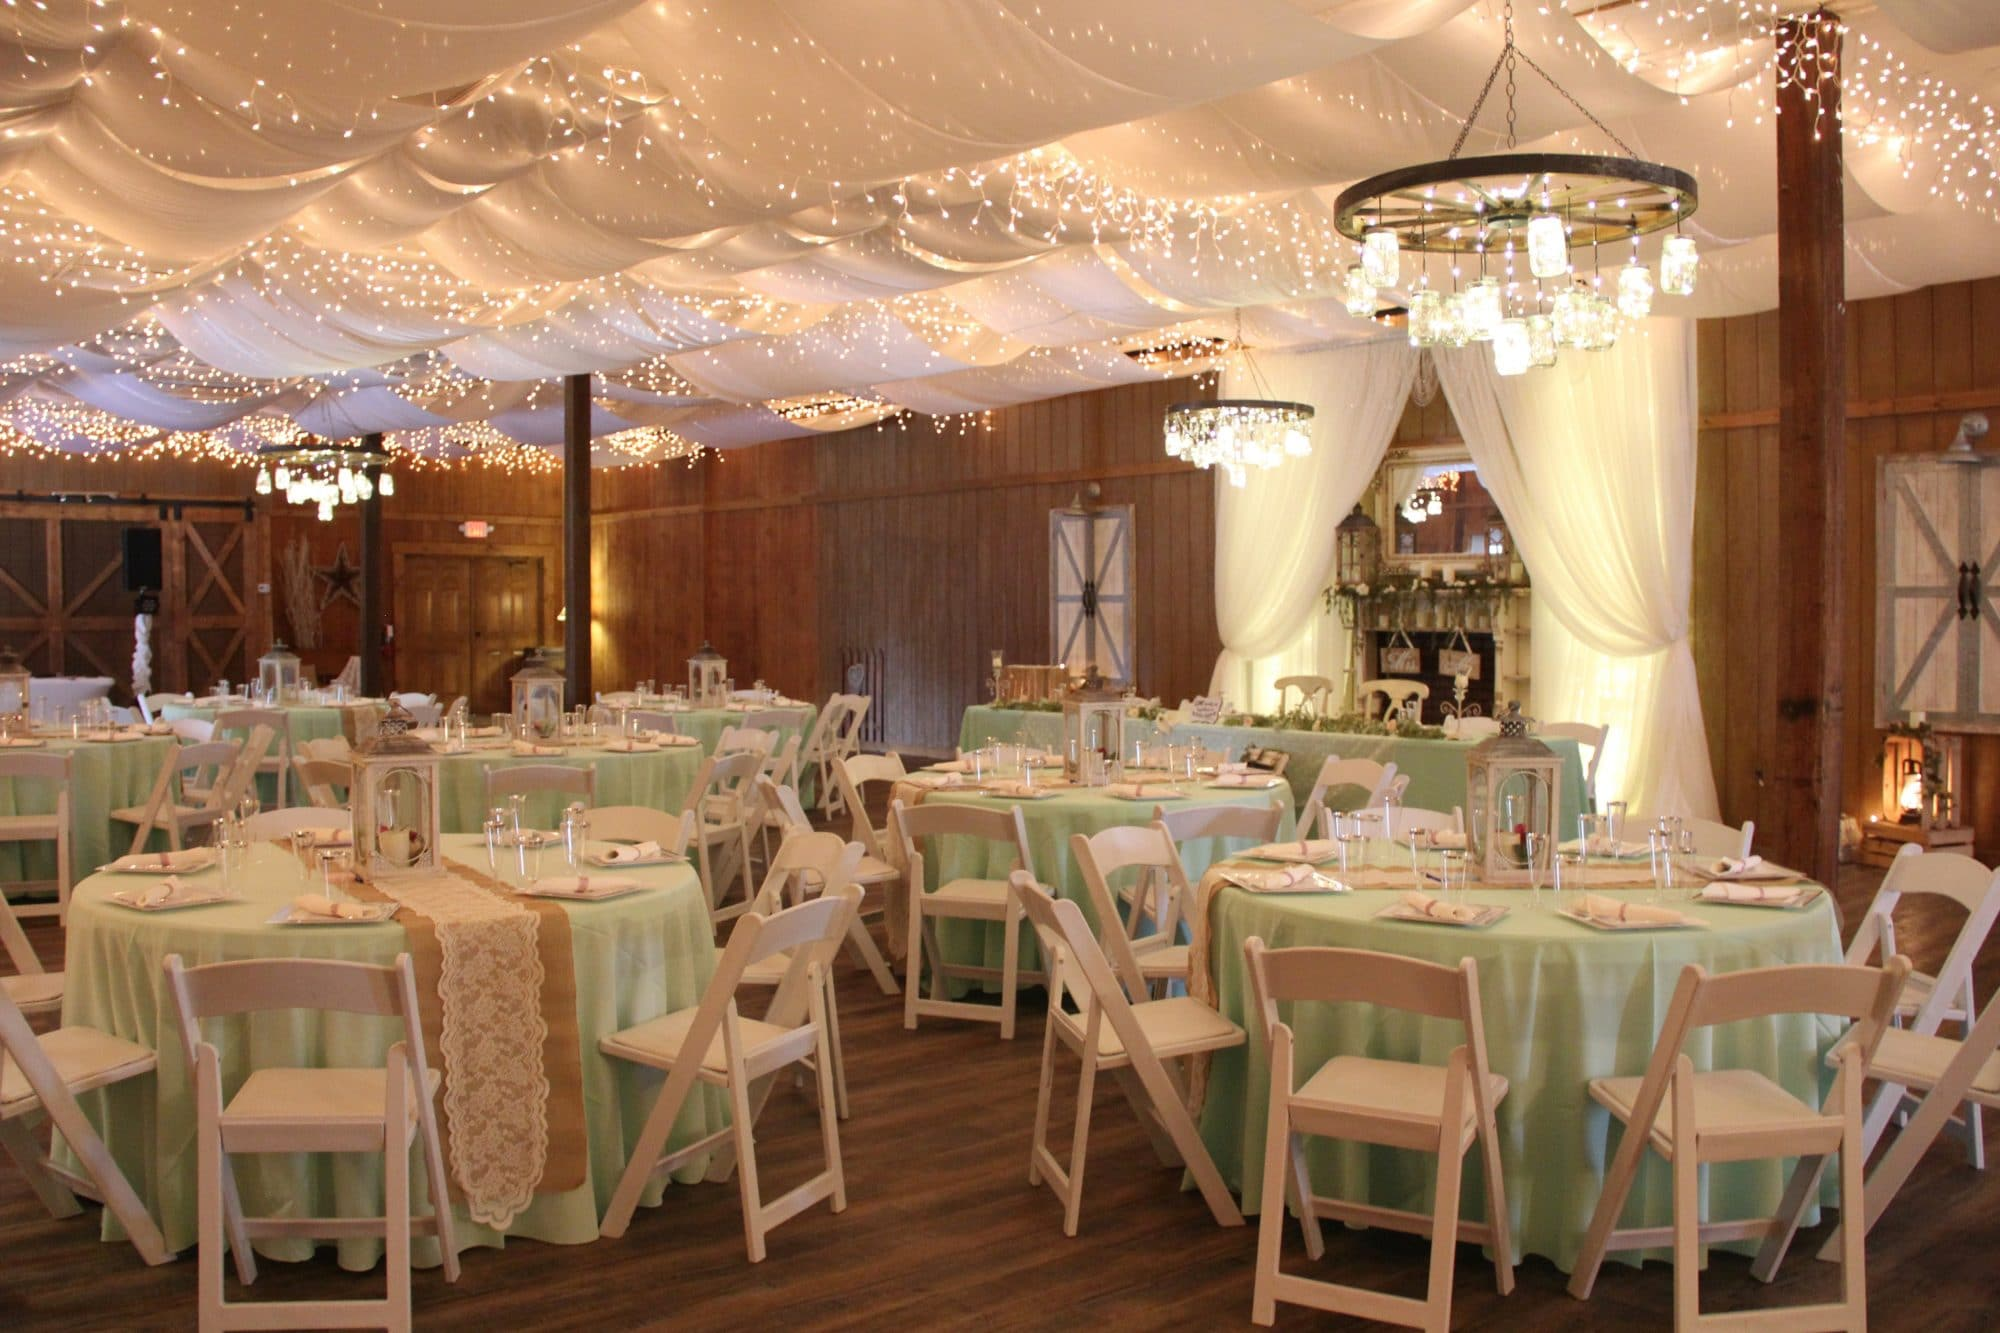 Harmony Haven Event Venue - wedding reception venue with white fabric draping and icicle lights on the ceiling.